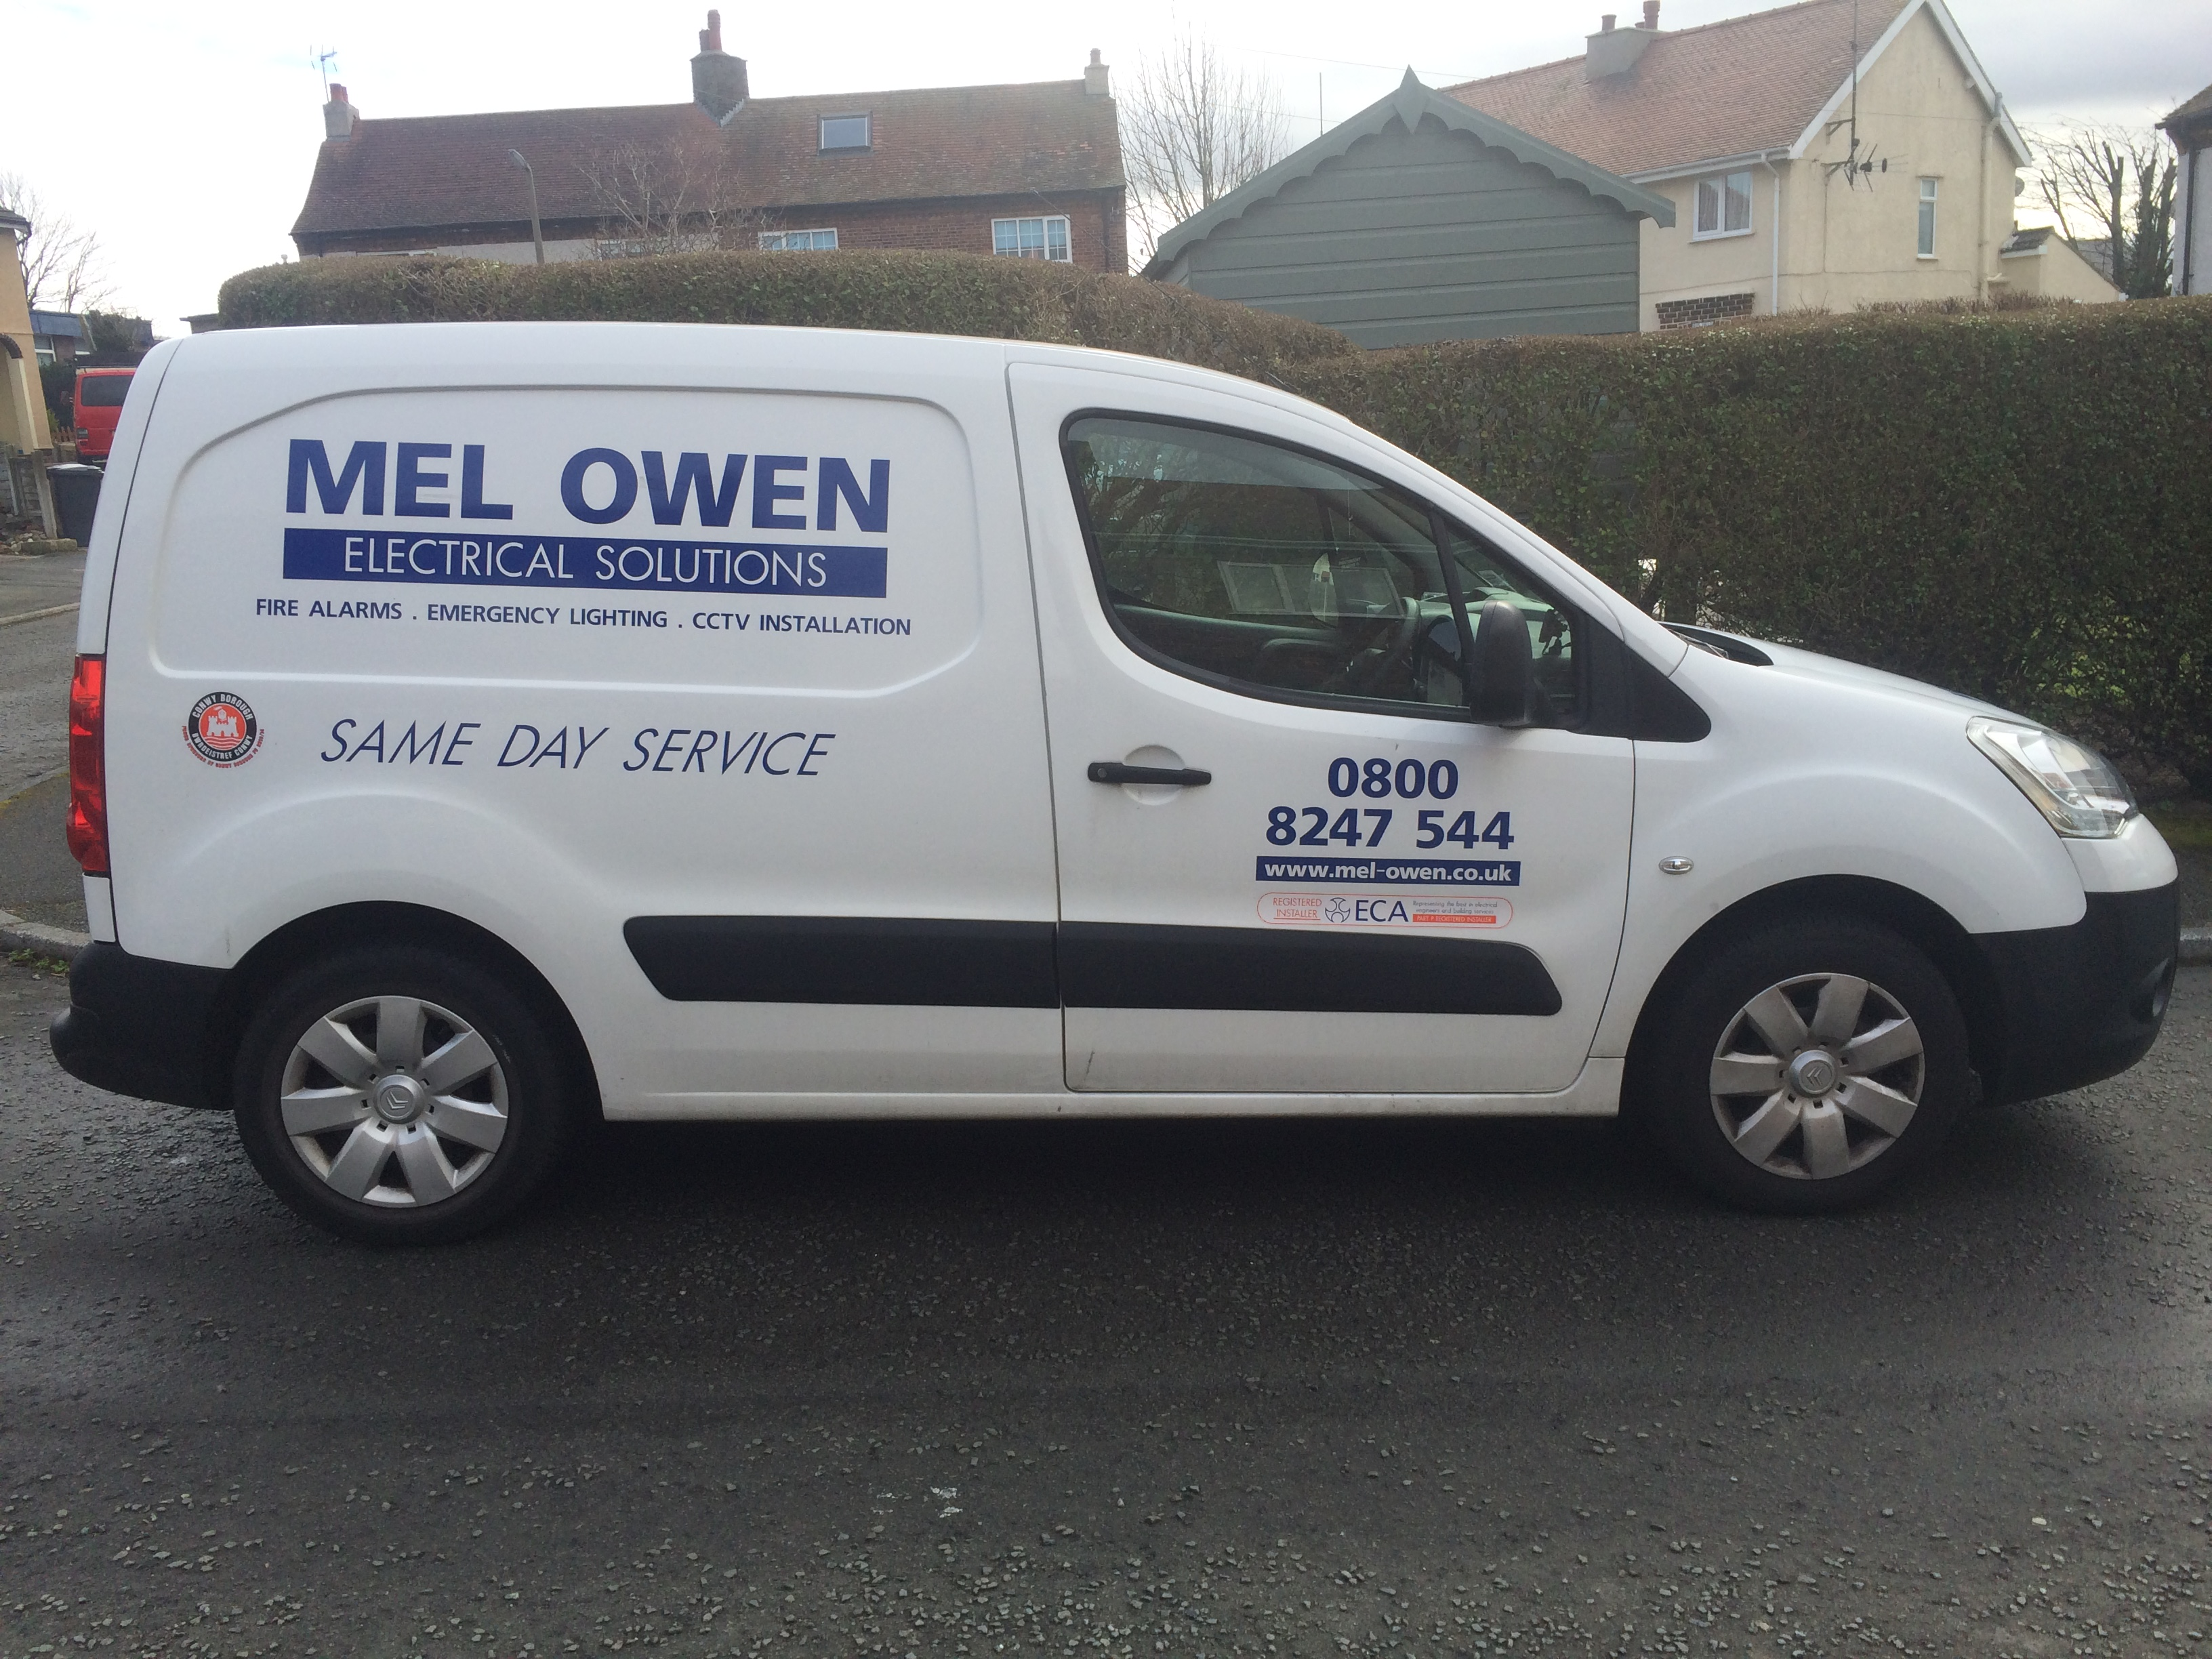 mel owen electrical solutions van